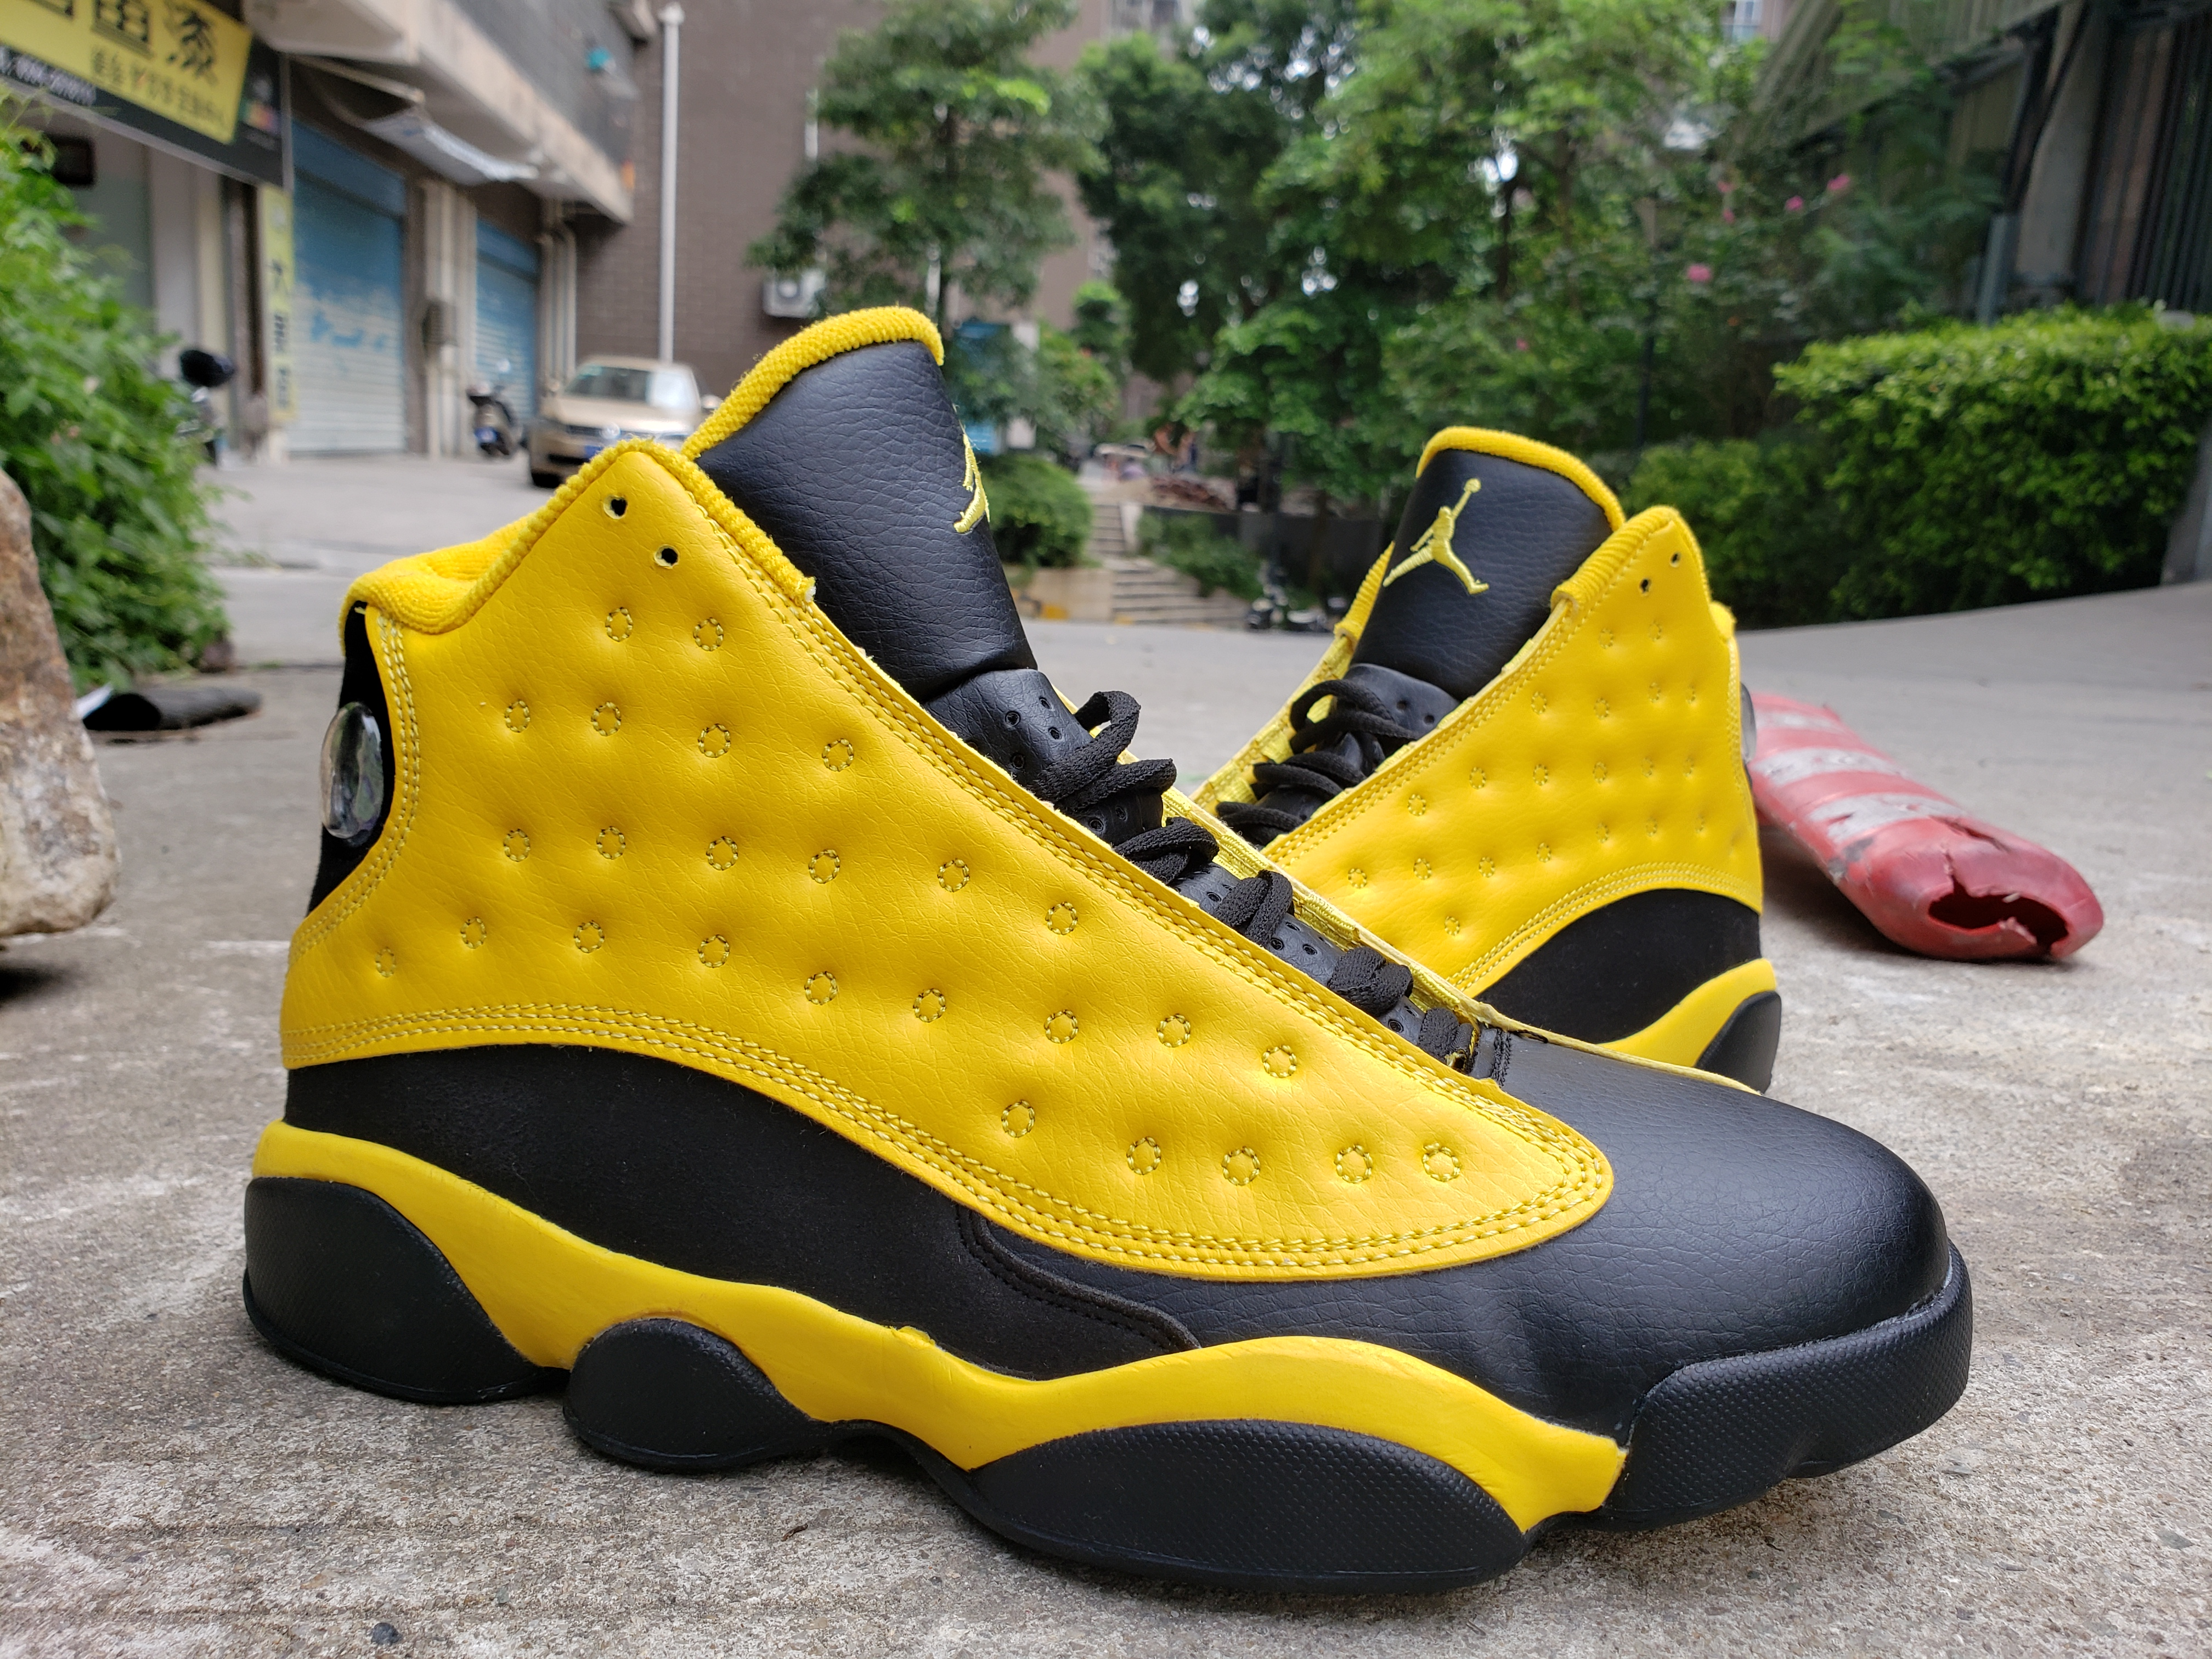 2019 Air Jordan Shoes 13 Yellow Black